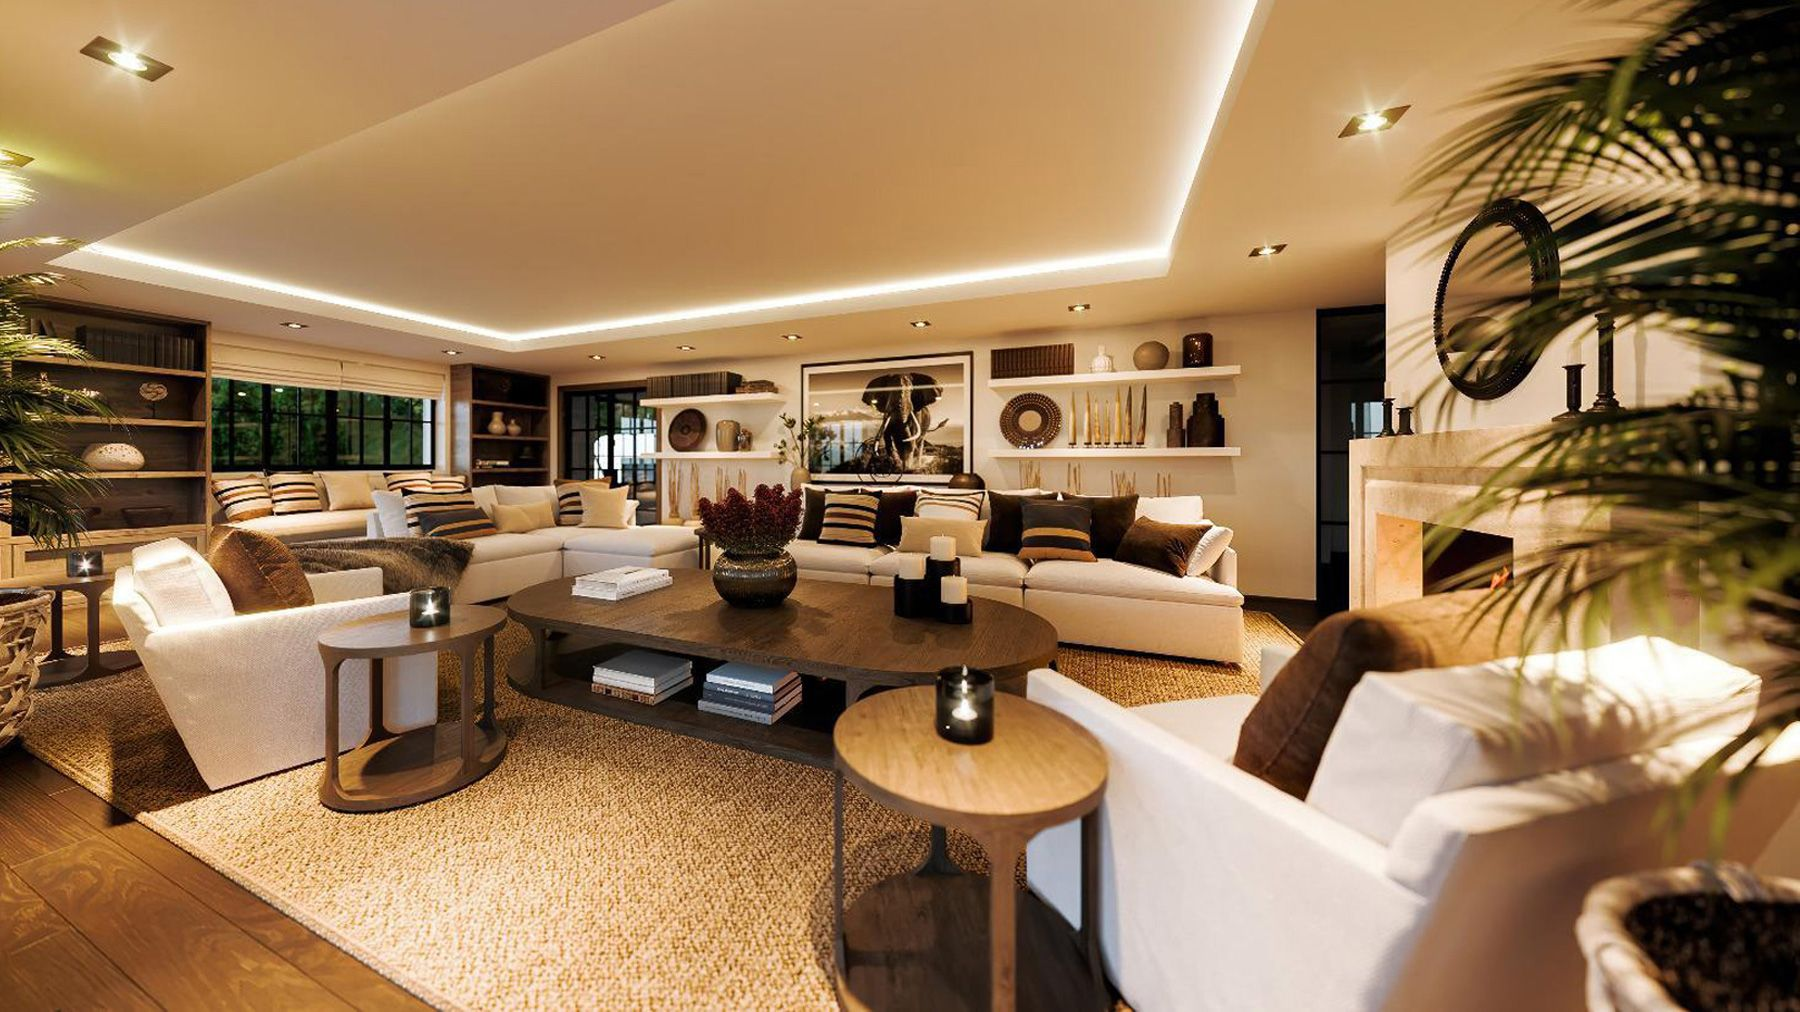 Get To Know Rougemont Interiors And The Beauty Of Their Projects